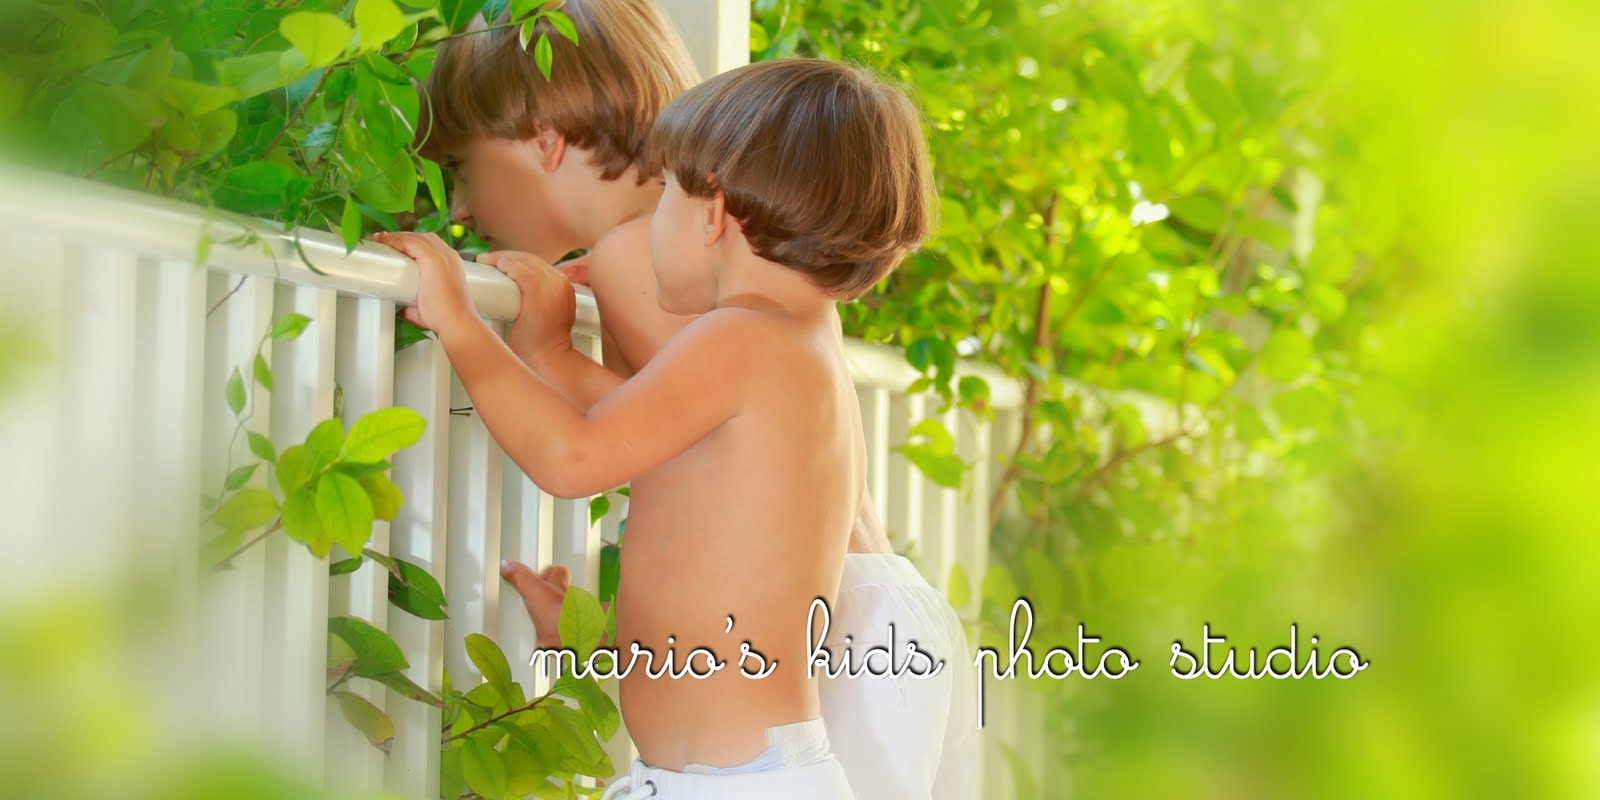 mario's kids photo studio